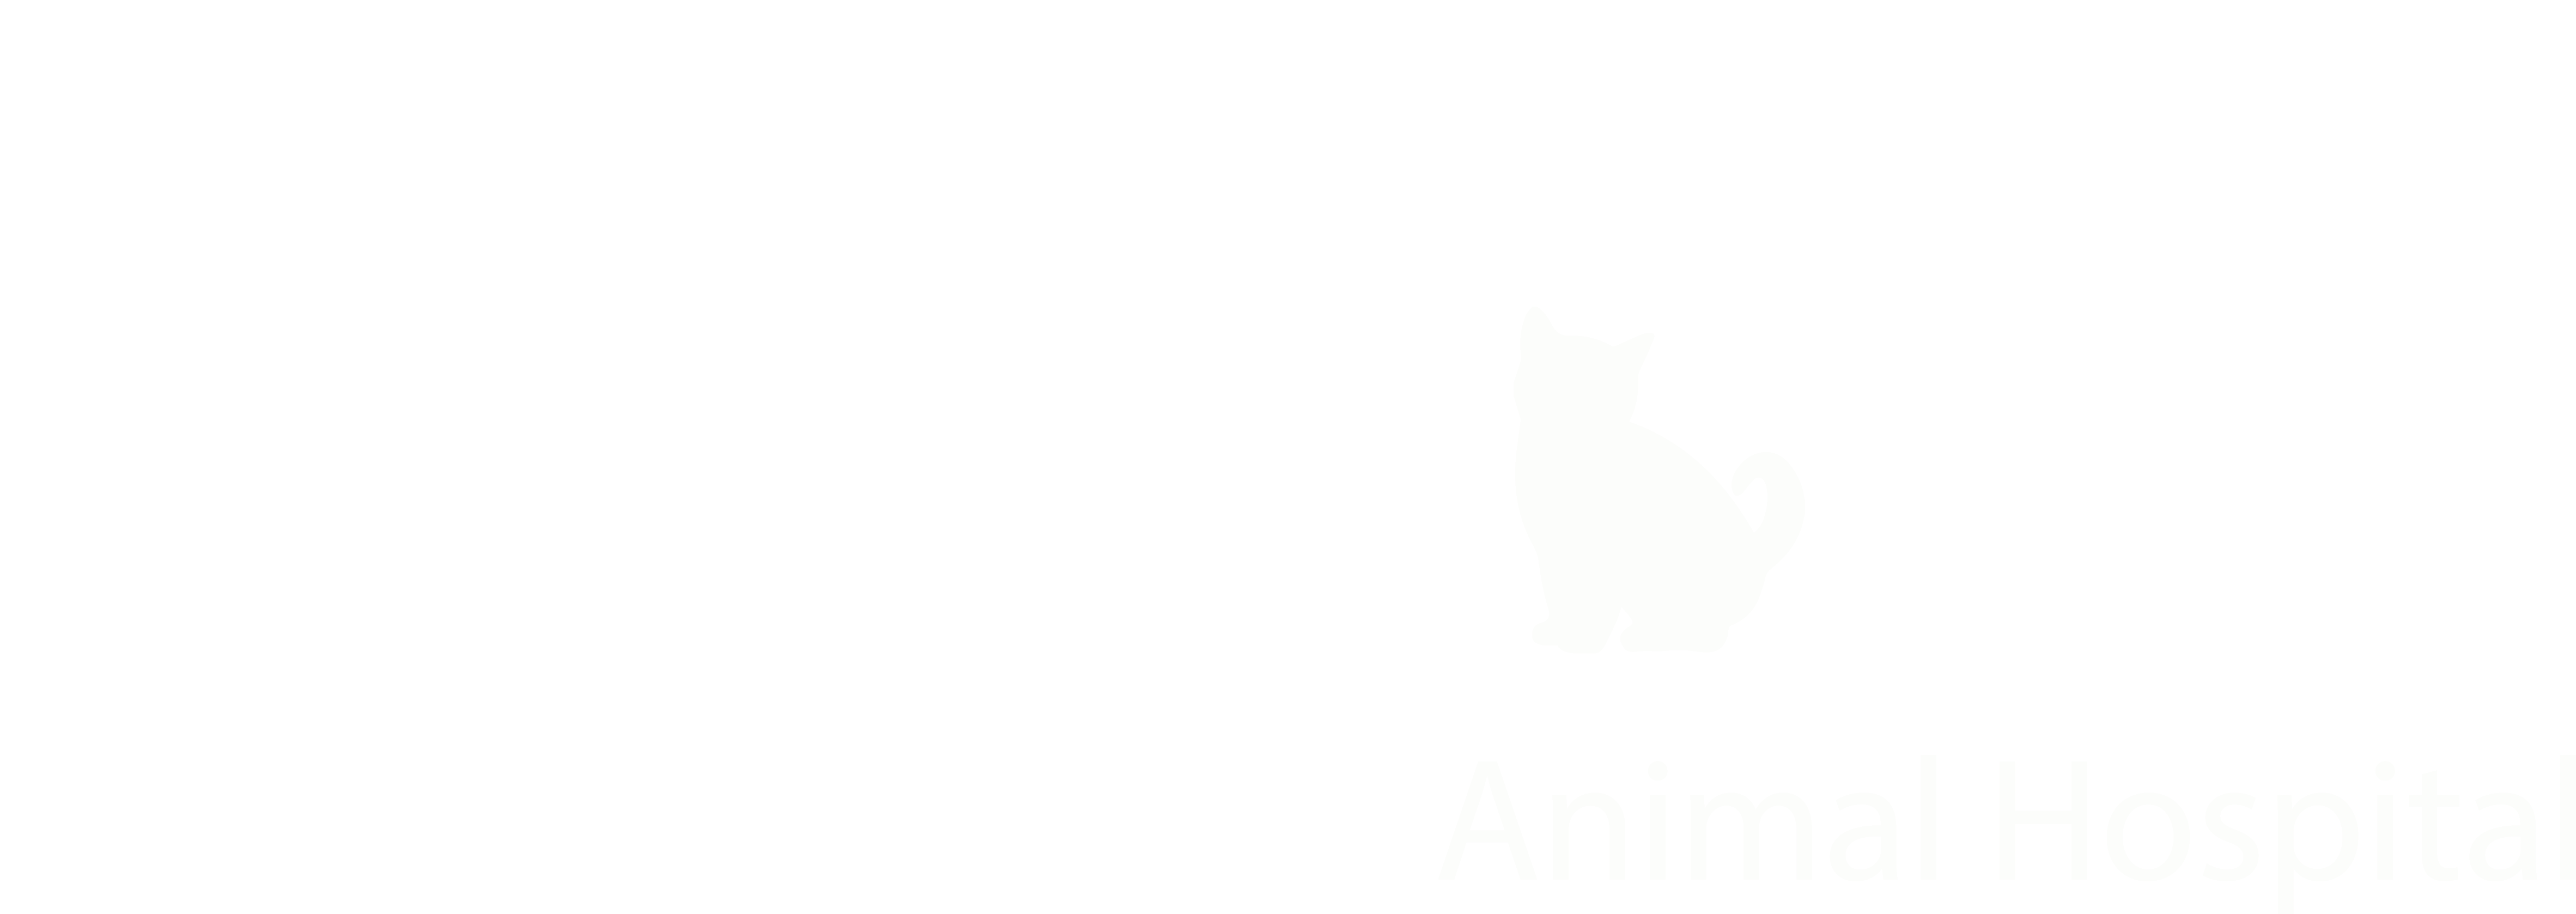 Southern California Animal Hospital - La Puente, Ca